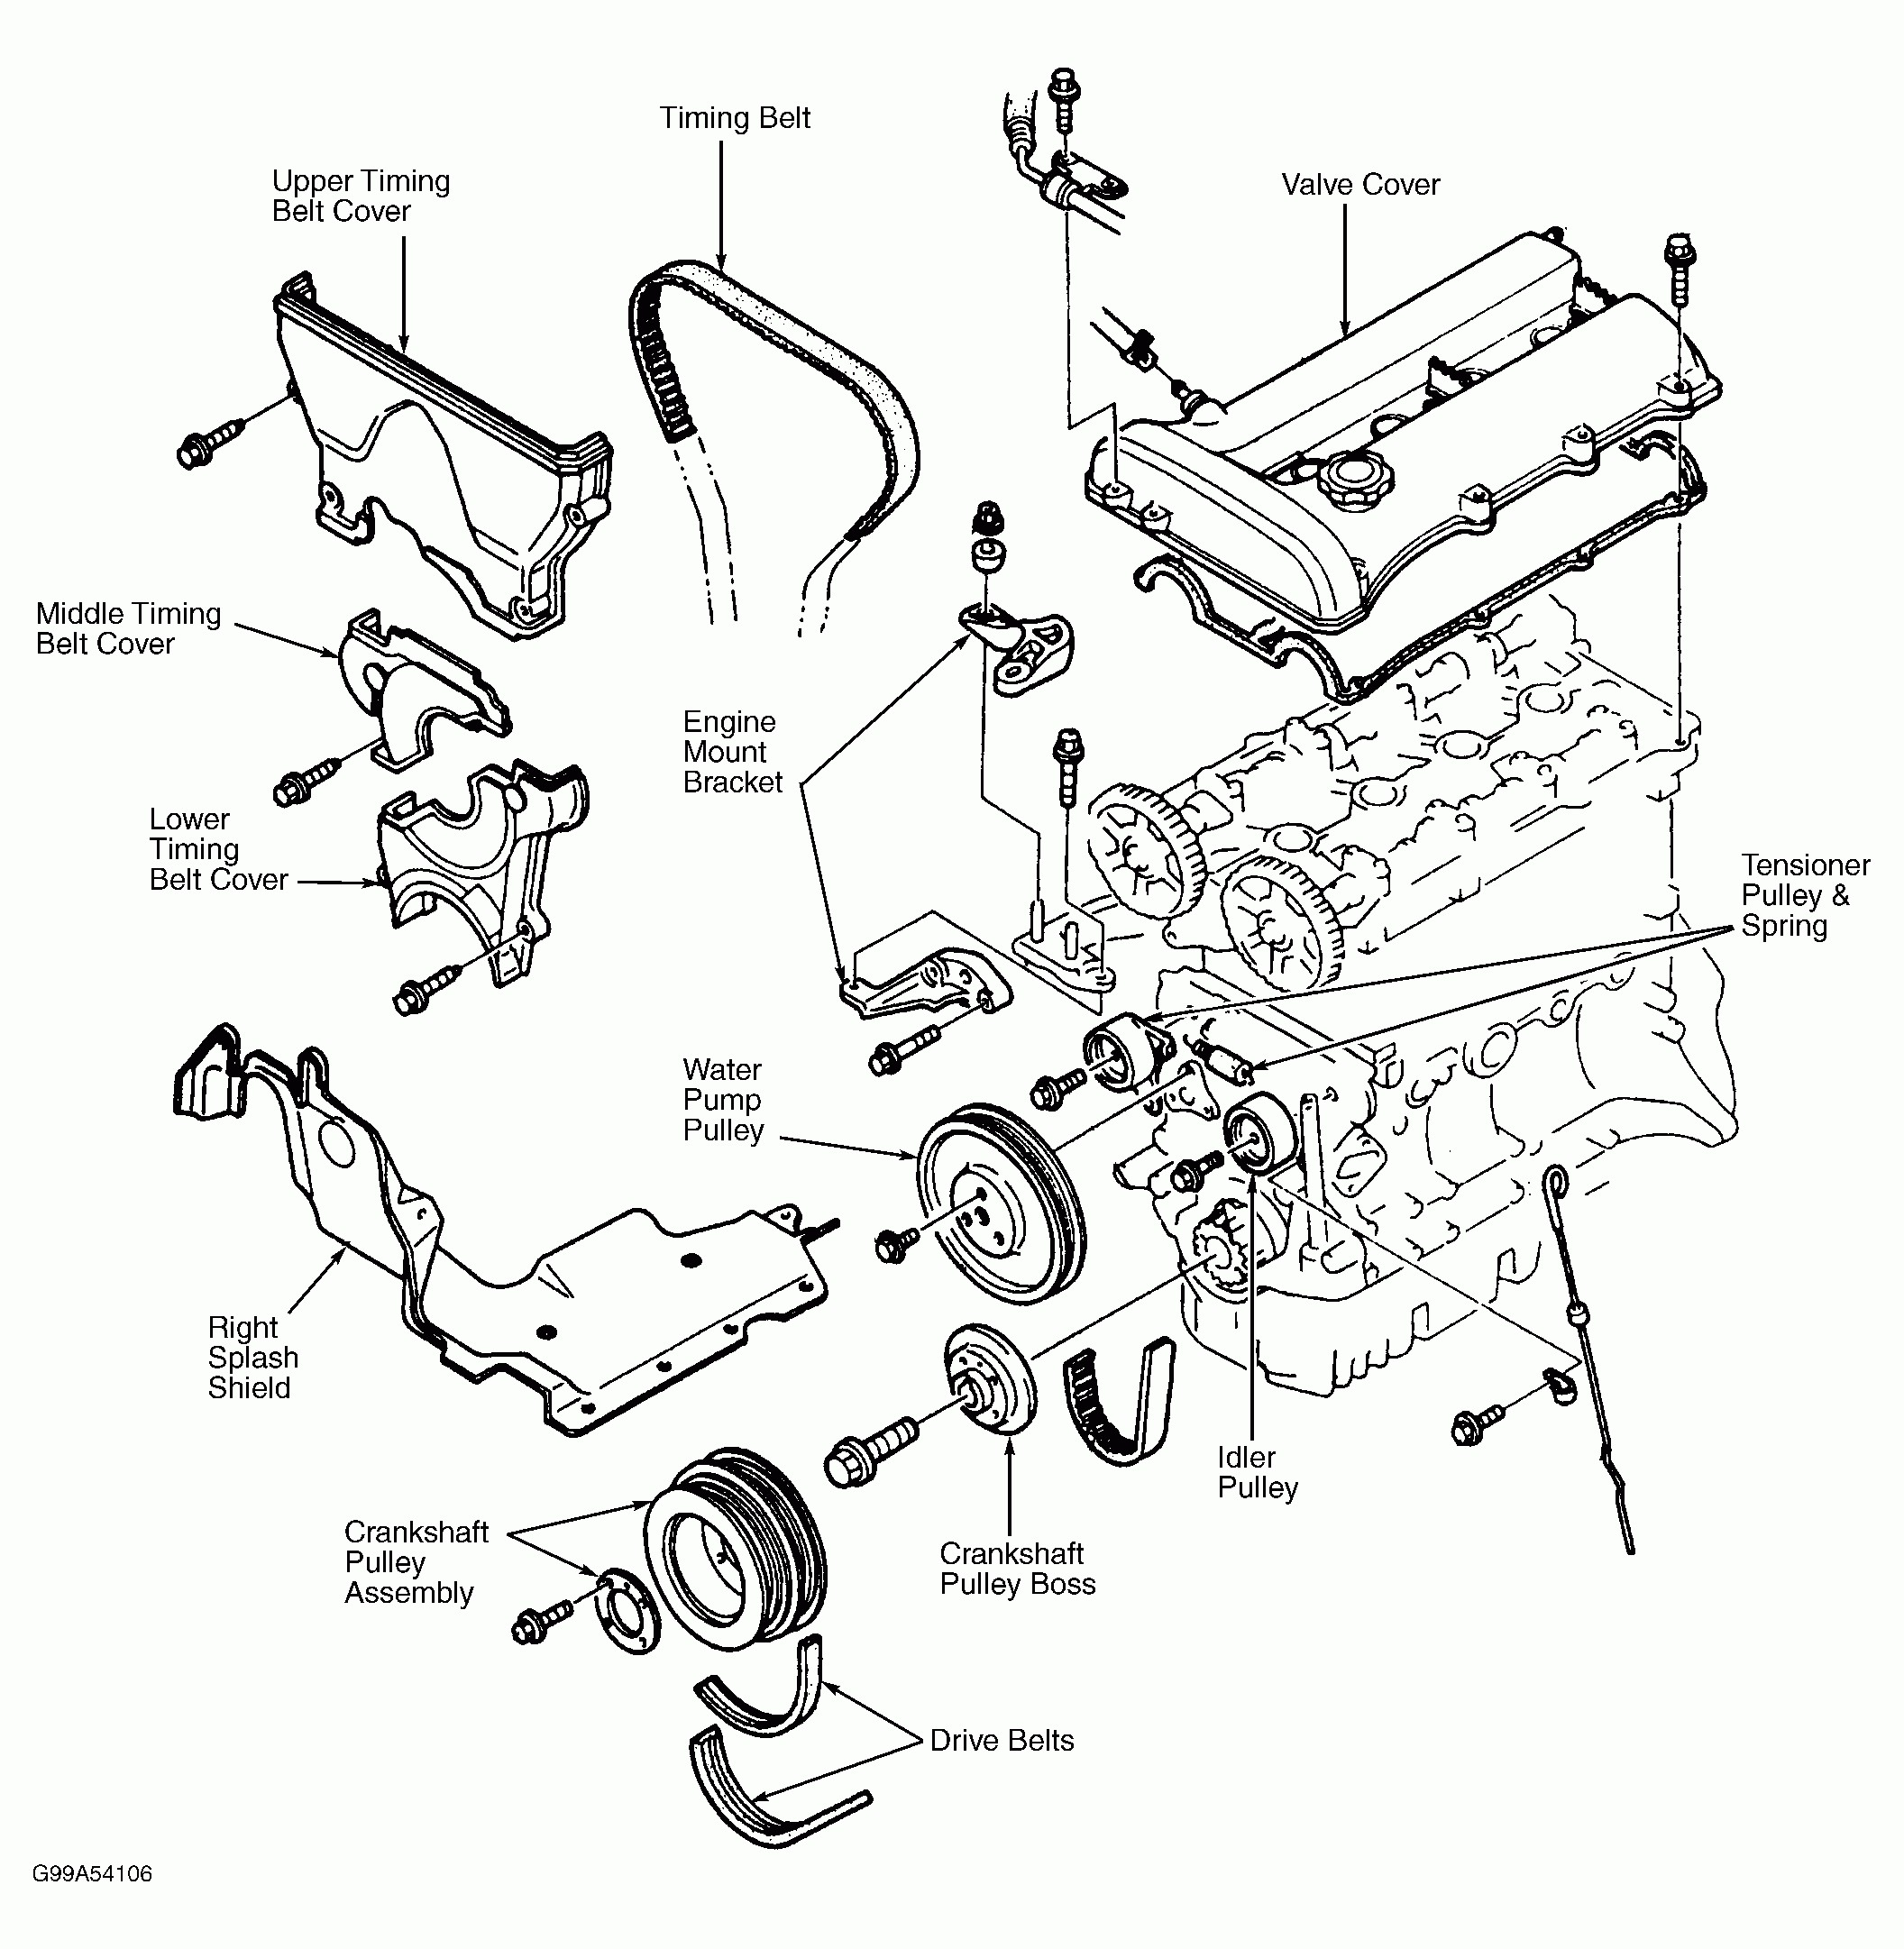 2002 Mazda Protege5 Engine Diagram 2002 Mazda Protege Engine Diagram 1997 Mazda Protege Serpentine Belt Of 2002 Mazda Protege5 Engine Diagram